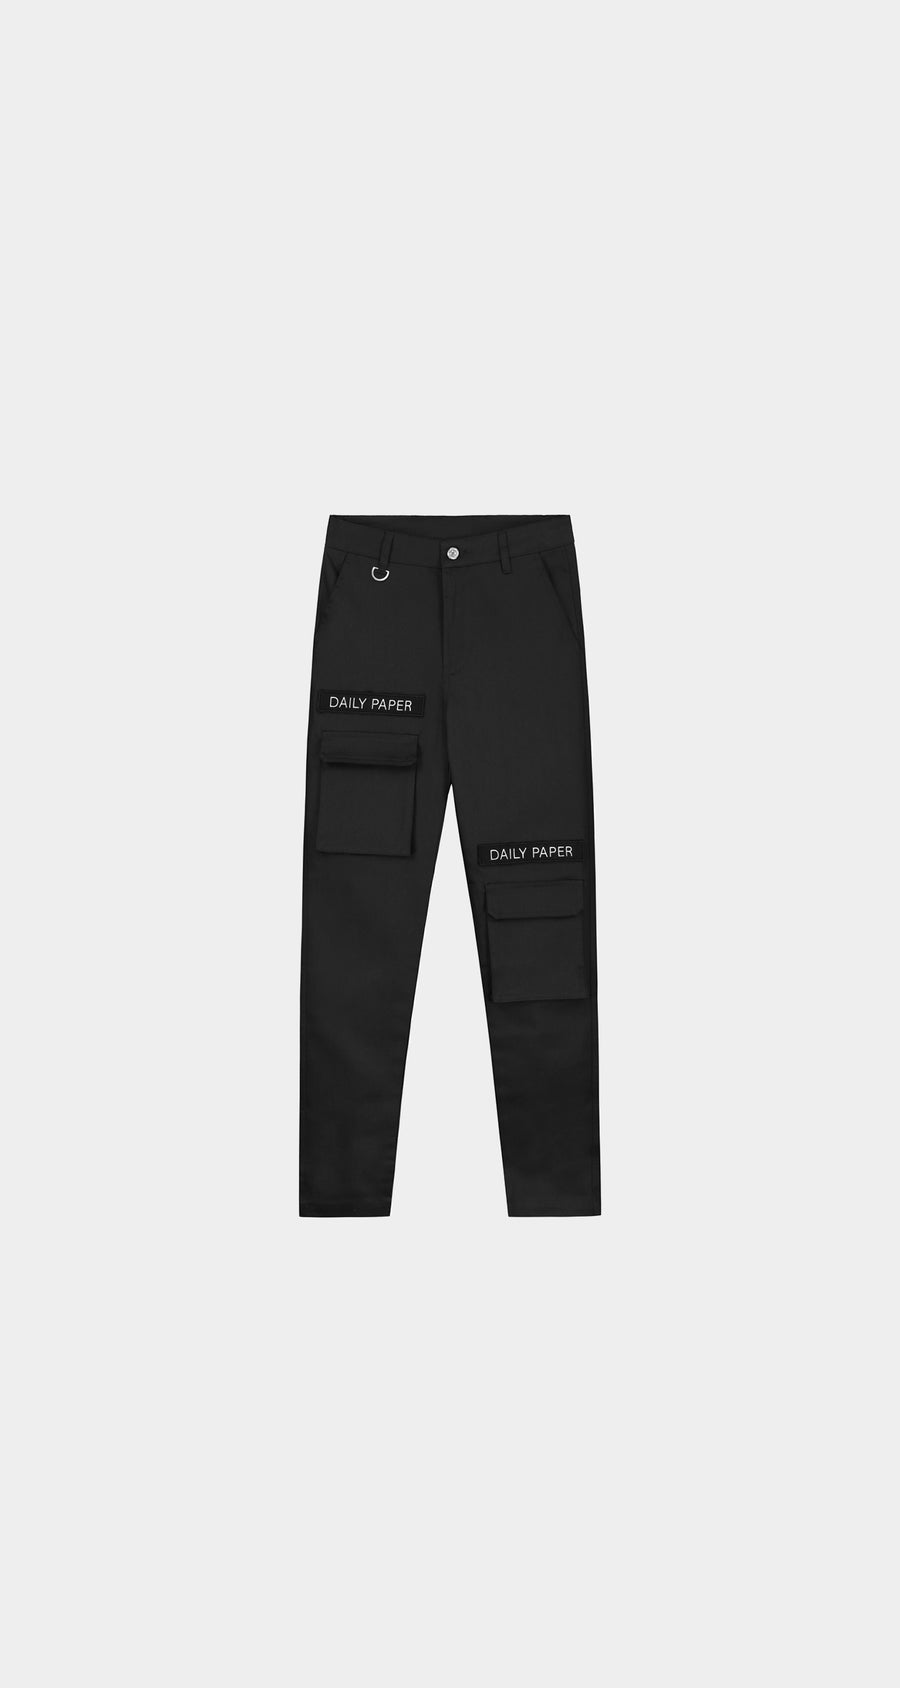 Daily Paper - Cargo Pants Black Women Front